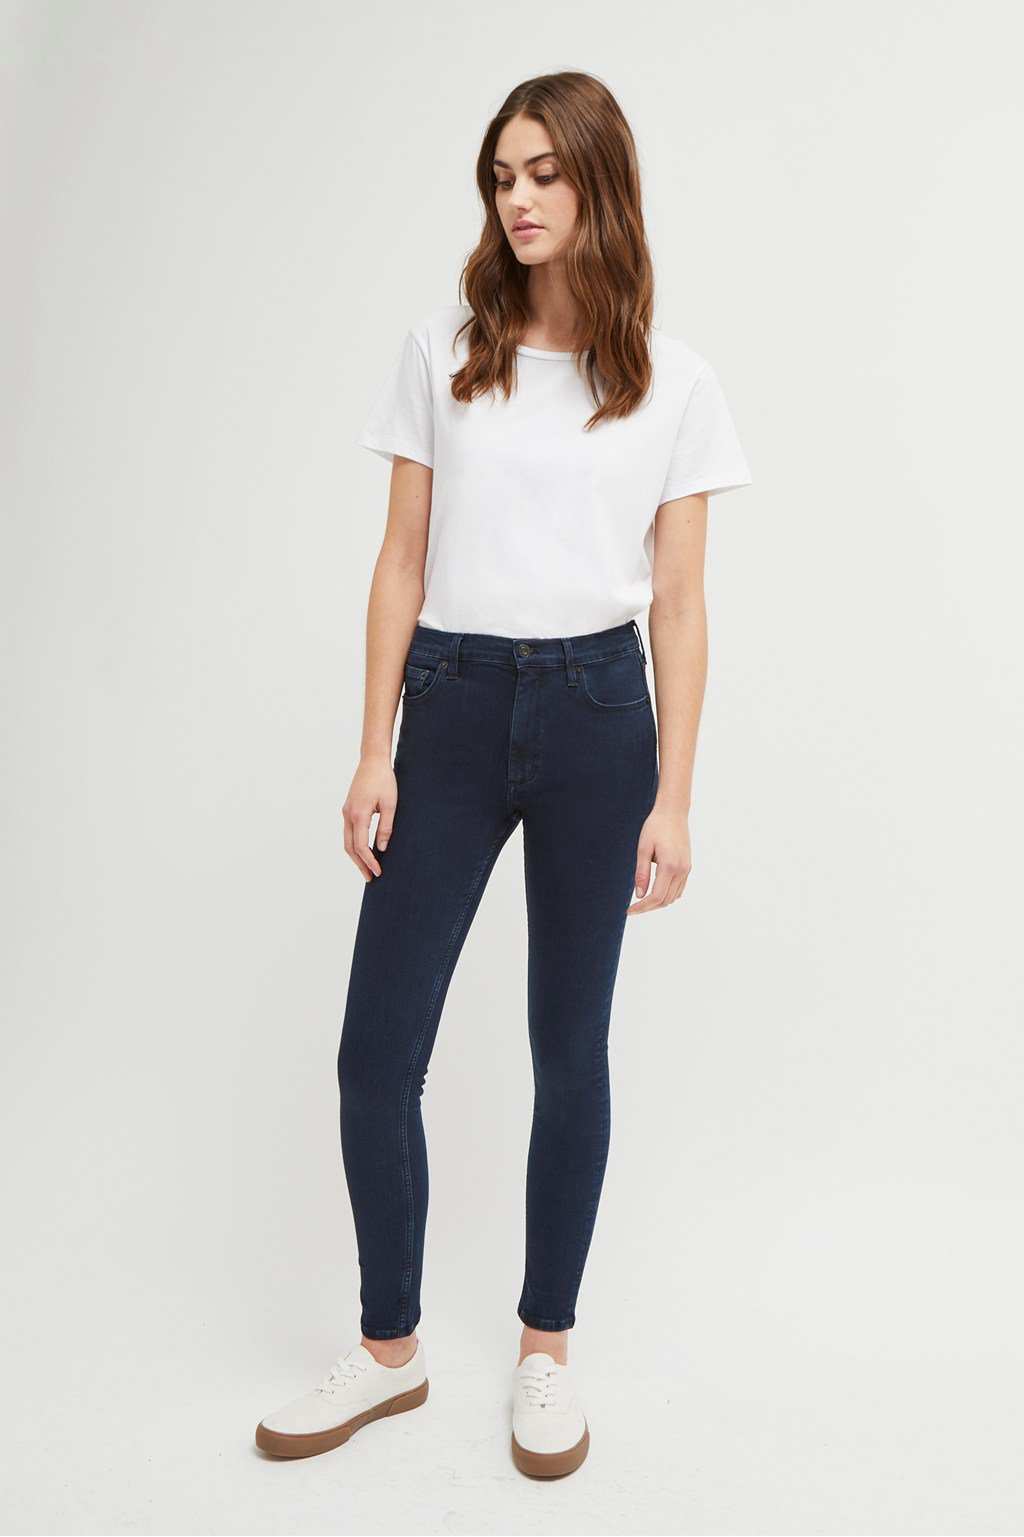 french-connection-rebound-skinny-jeans-blue-black-evalucia-boutique-perth-scotland